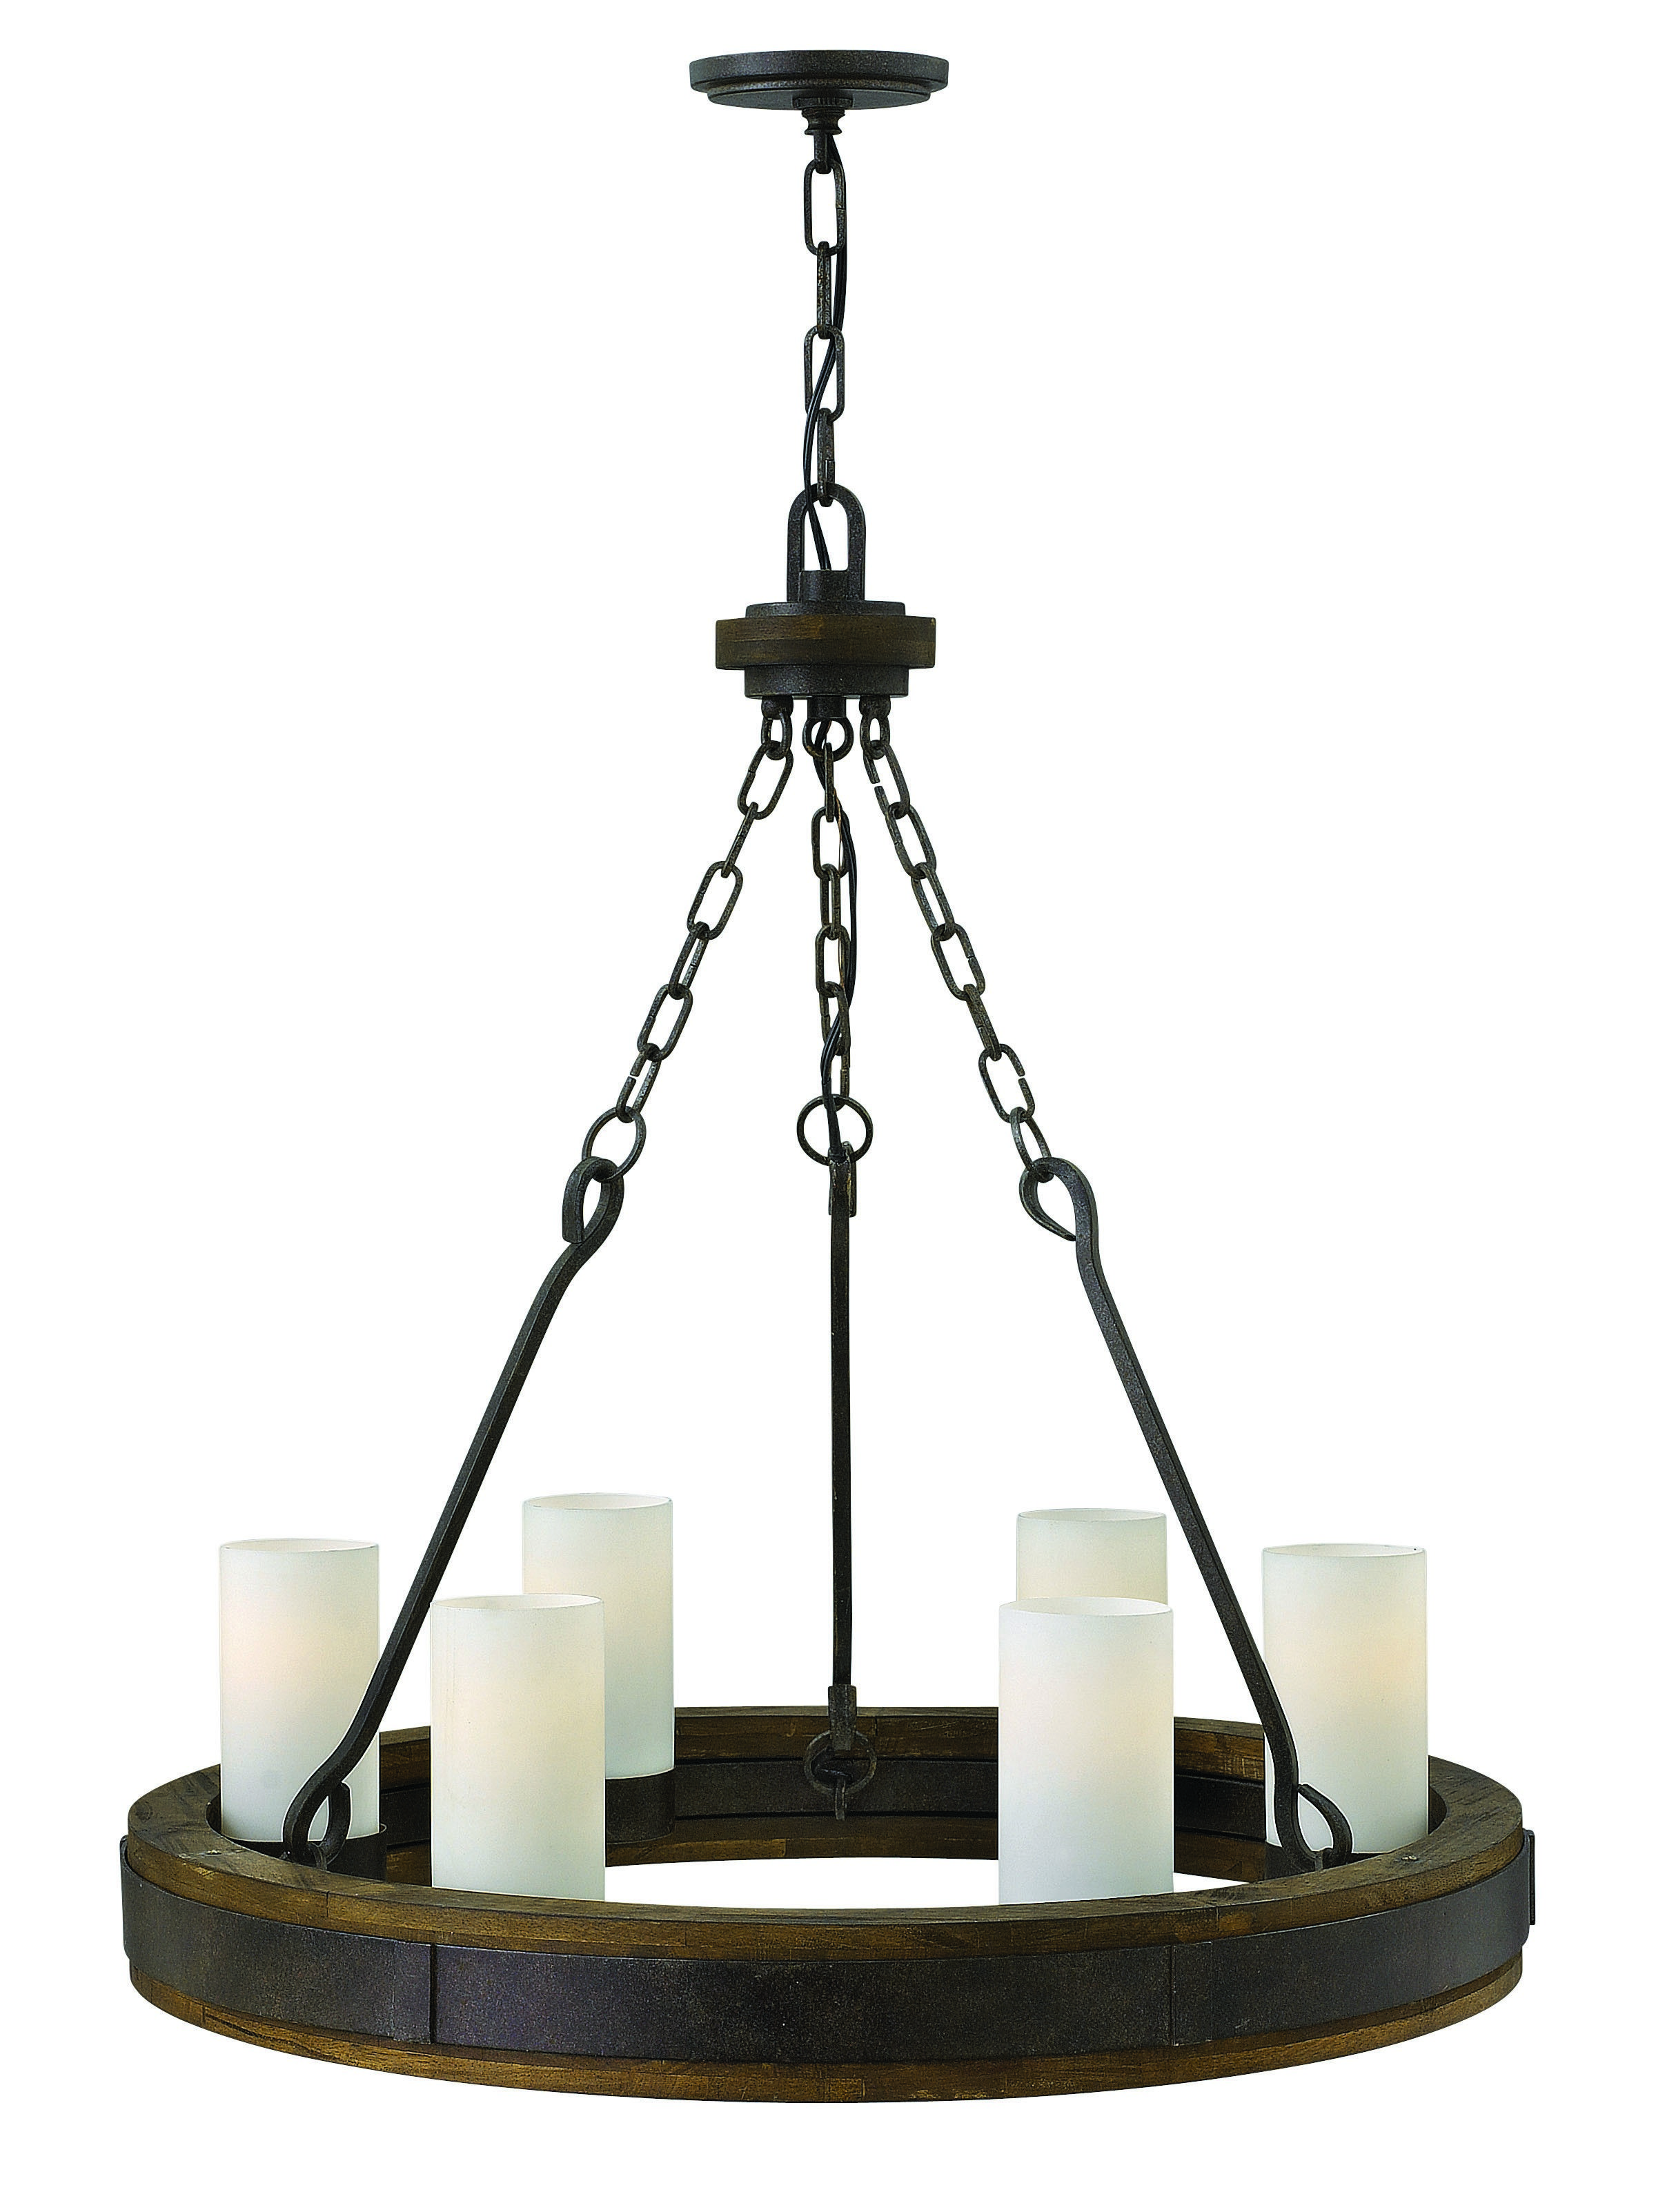 6 Light Chandelier</title><style>.an7l{position:absolute;clip:rect(464px,auto,auto,476px);}</style><div class=